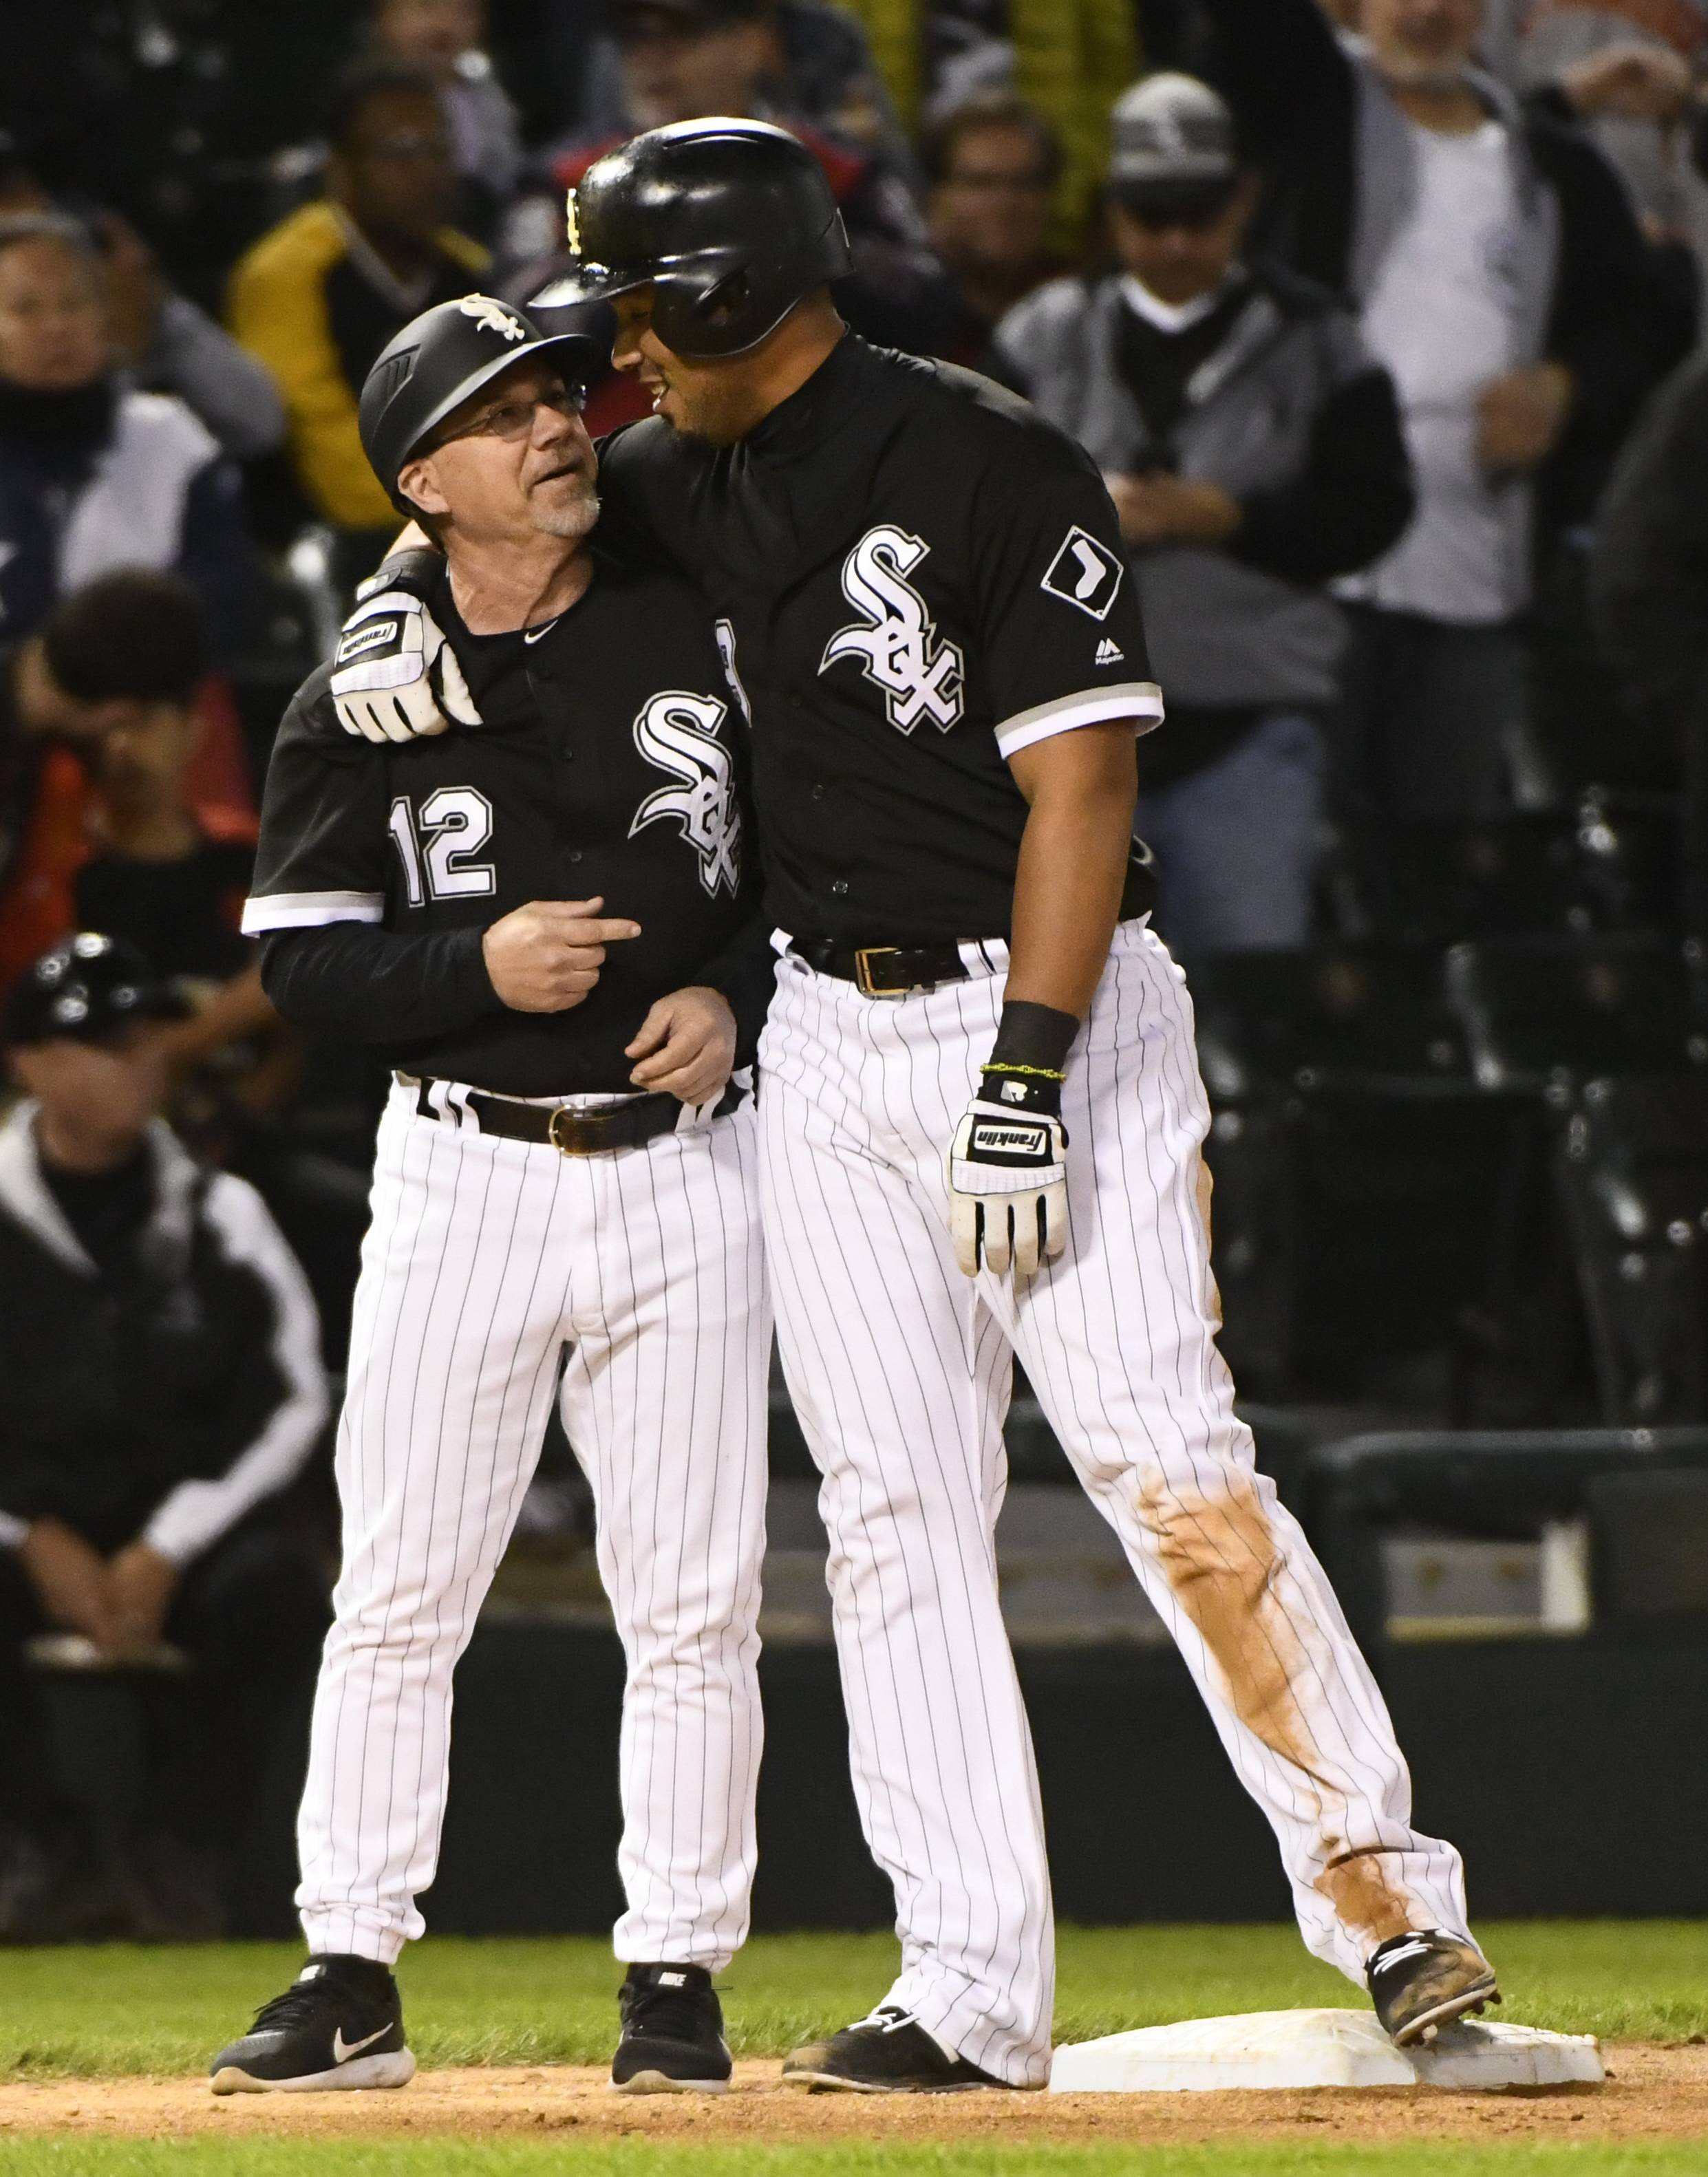 Chicago White Sox's Jose Abreu, right, hugs third base coach Nick Capra (12) after hitting a triple for the cycle against the San Francisco Giants during the eighth inning of a baseball game in Chicago, Saturday, Sept. 9, 2017. (AP Photo/Matt Marton)